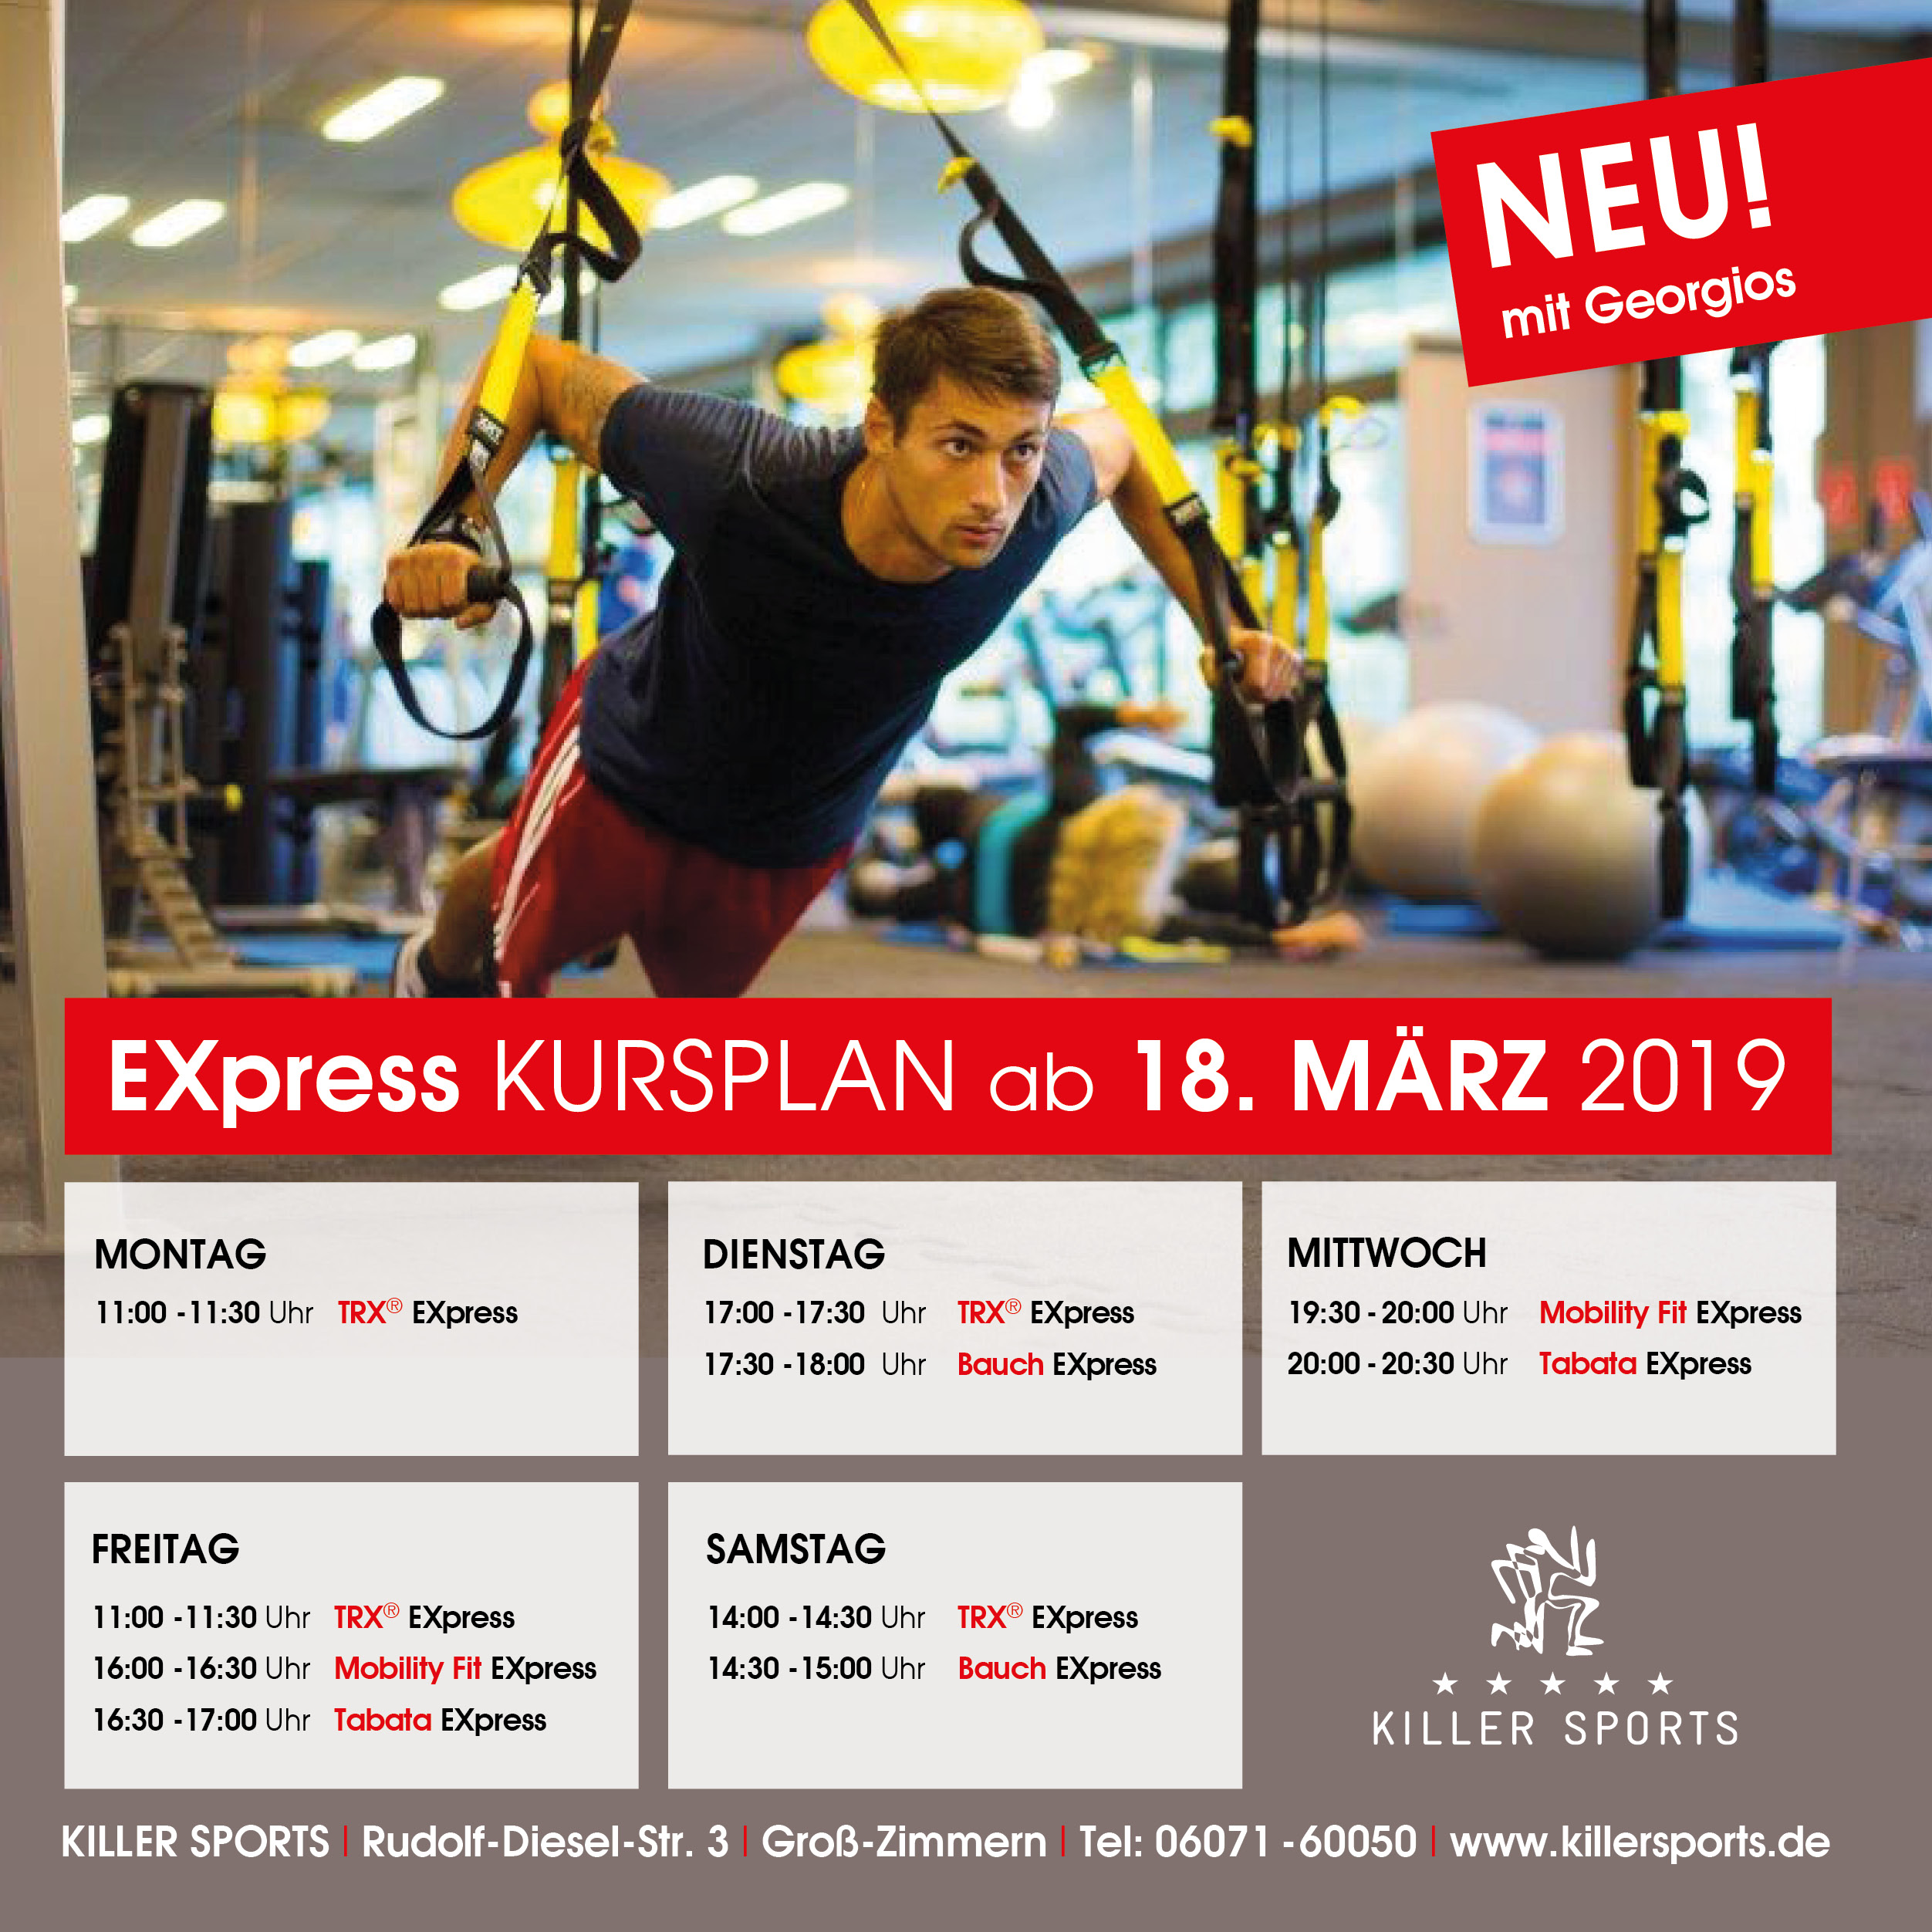 Express Kursplan Killer Sports